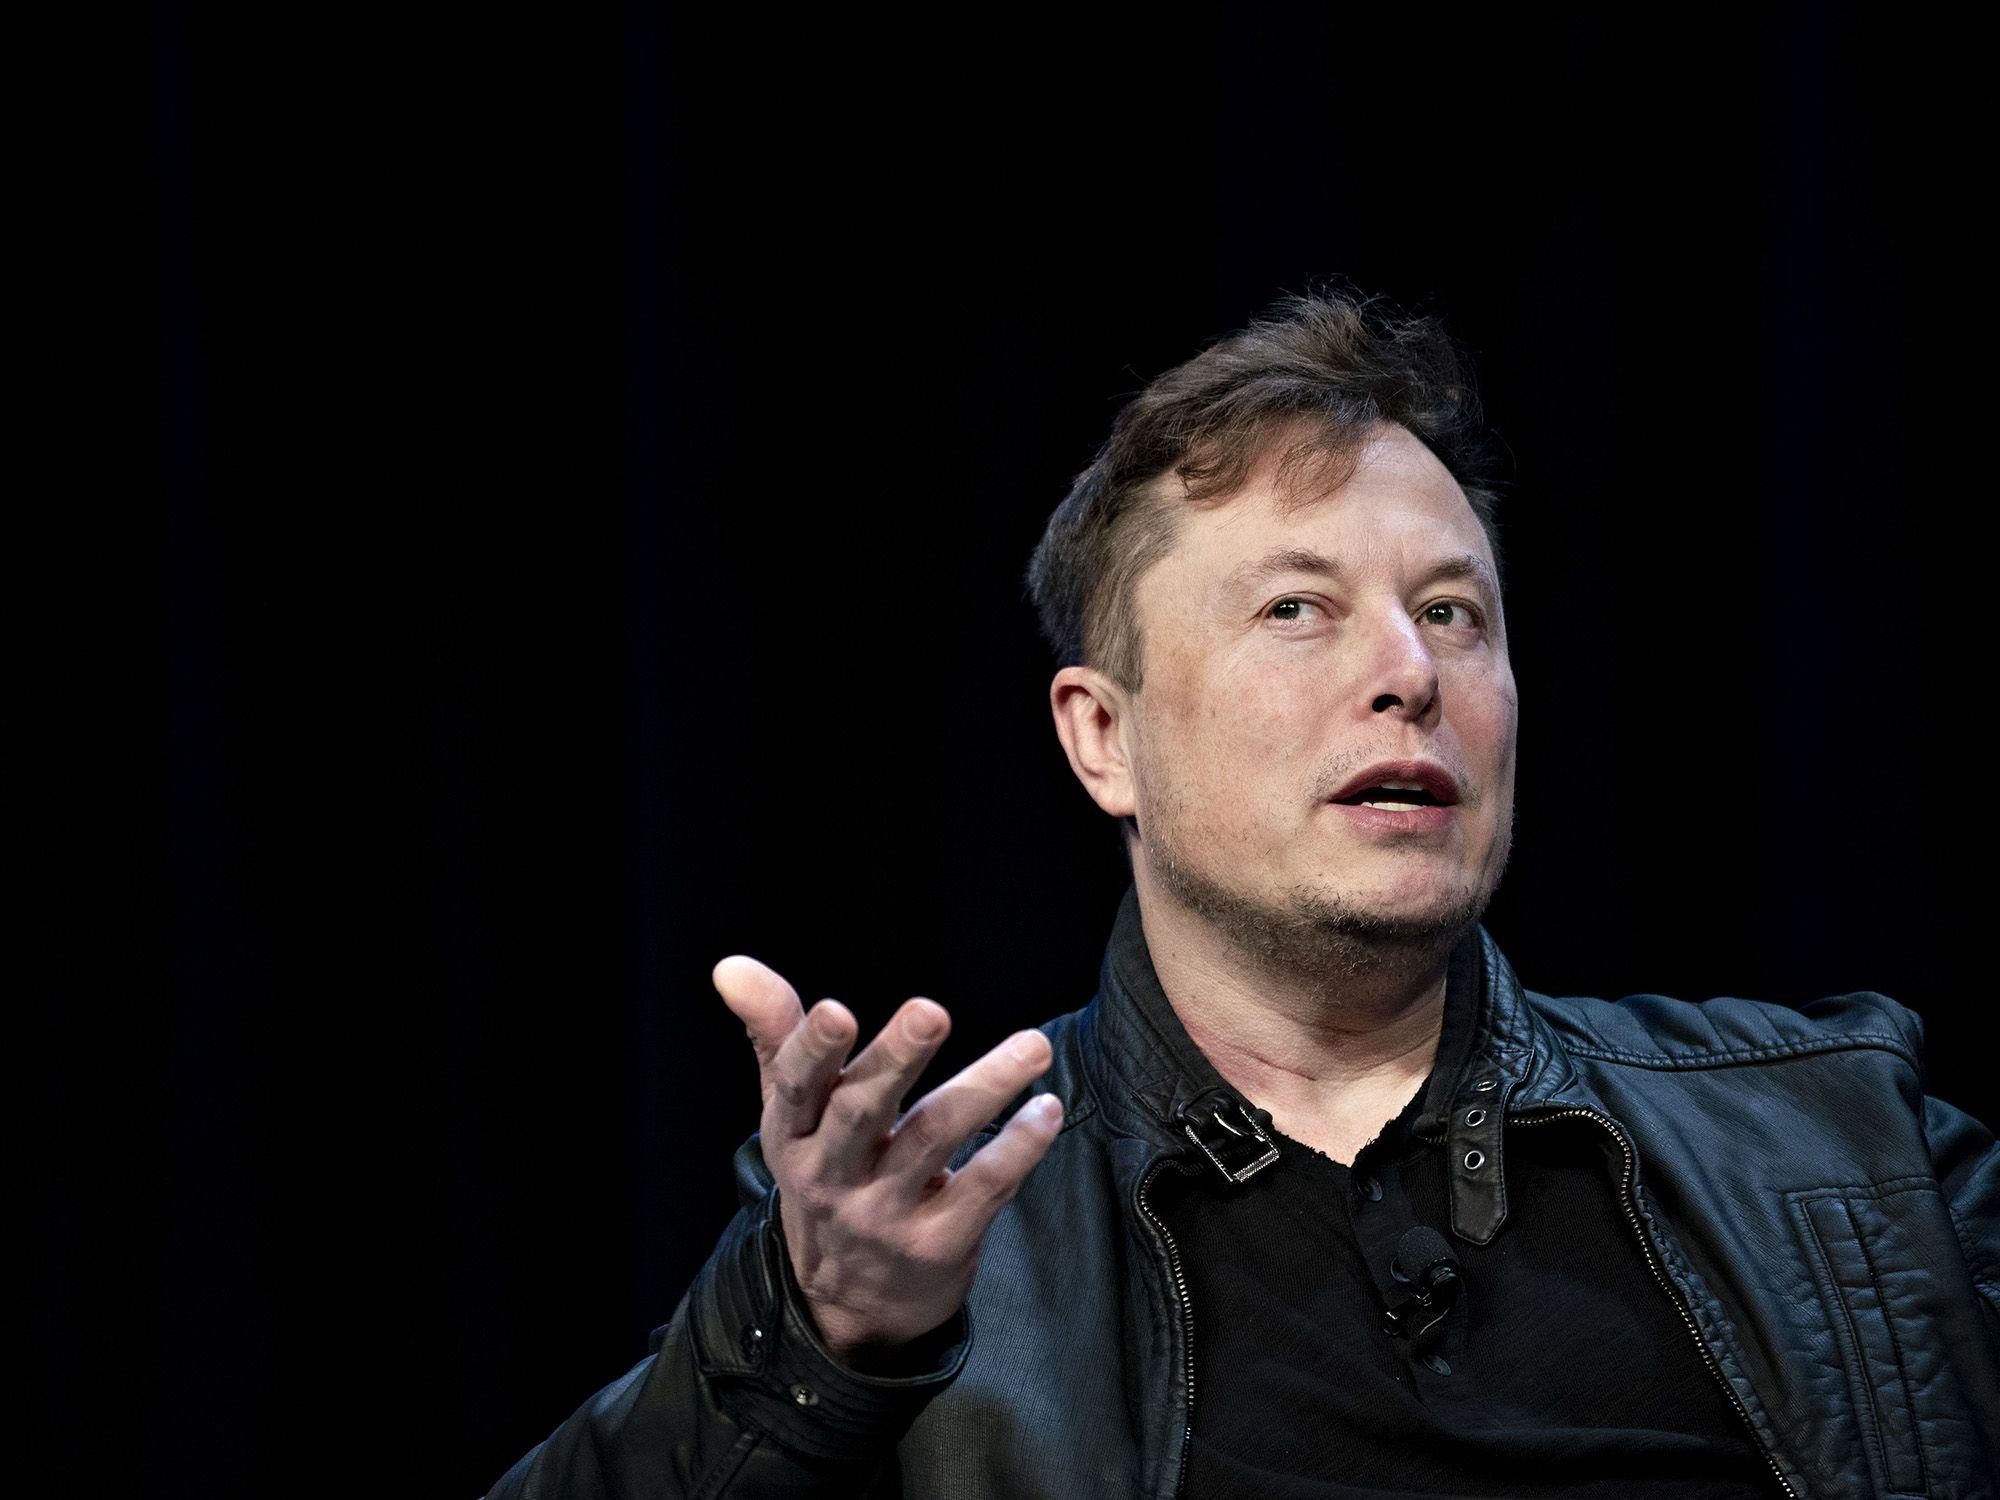 Bitcoin Tumbles After Musk Implies Tesla May Sell Cryptocurrency - Yahoo Canada Finance